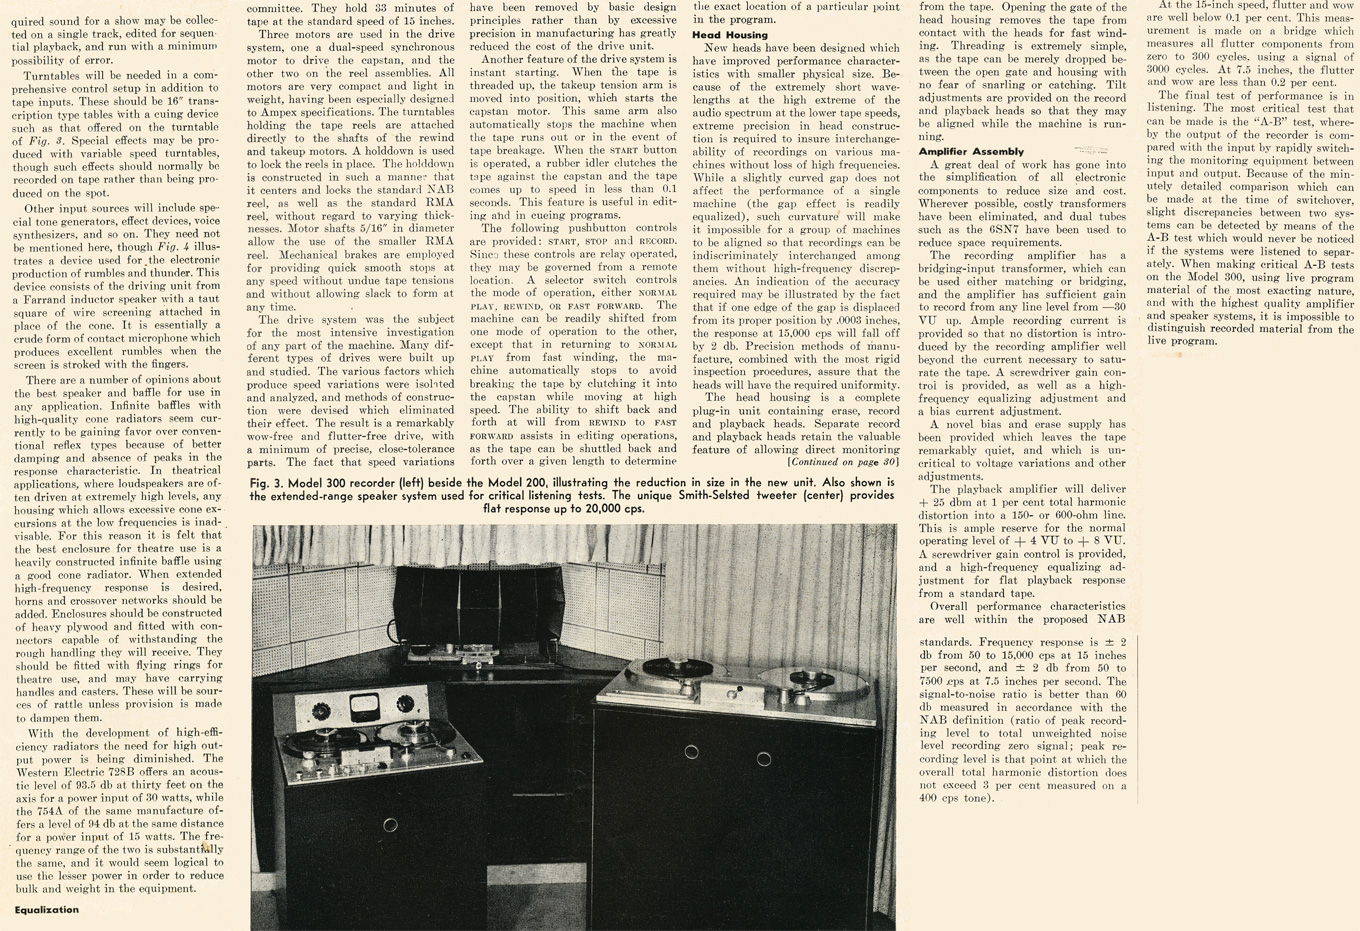 1949 review of the Ampex 300 professional reel to reeel tape recorder in the Reel2ReelTexas.com vintage recording collection